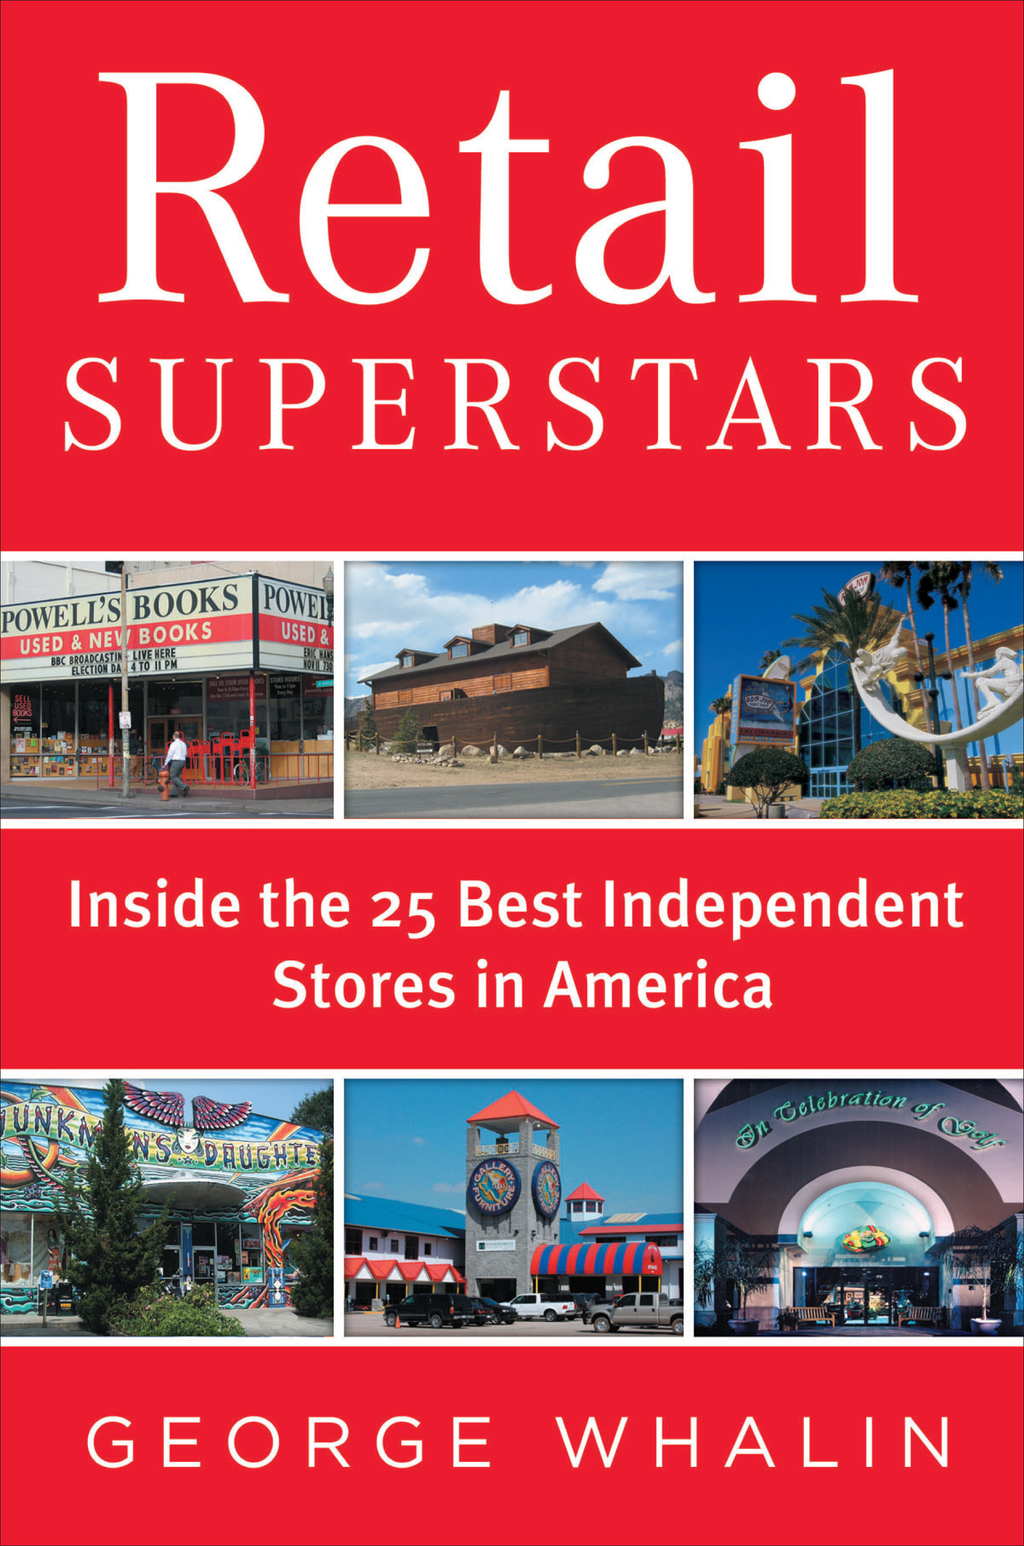 Retail Superstars Inside the 25 Best Independent Stores in America